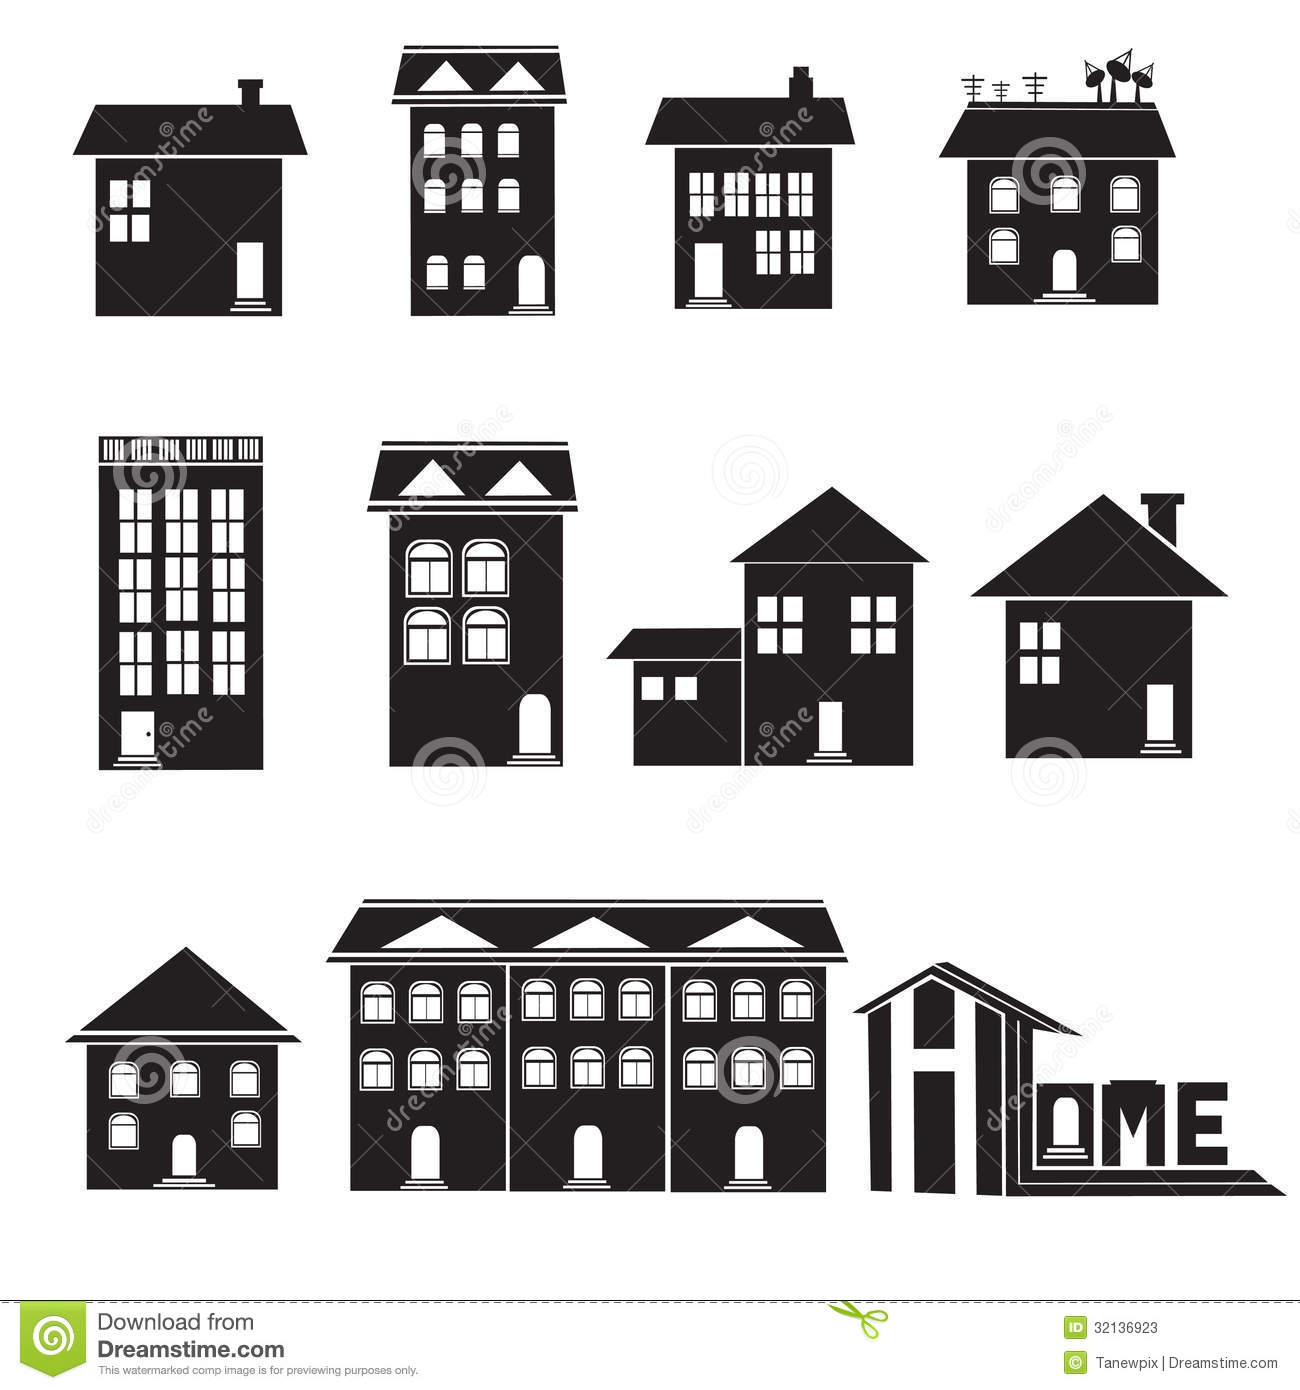 Apartment clipart outline. Hotel r best deal